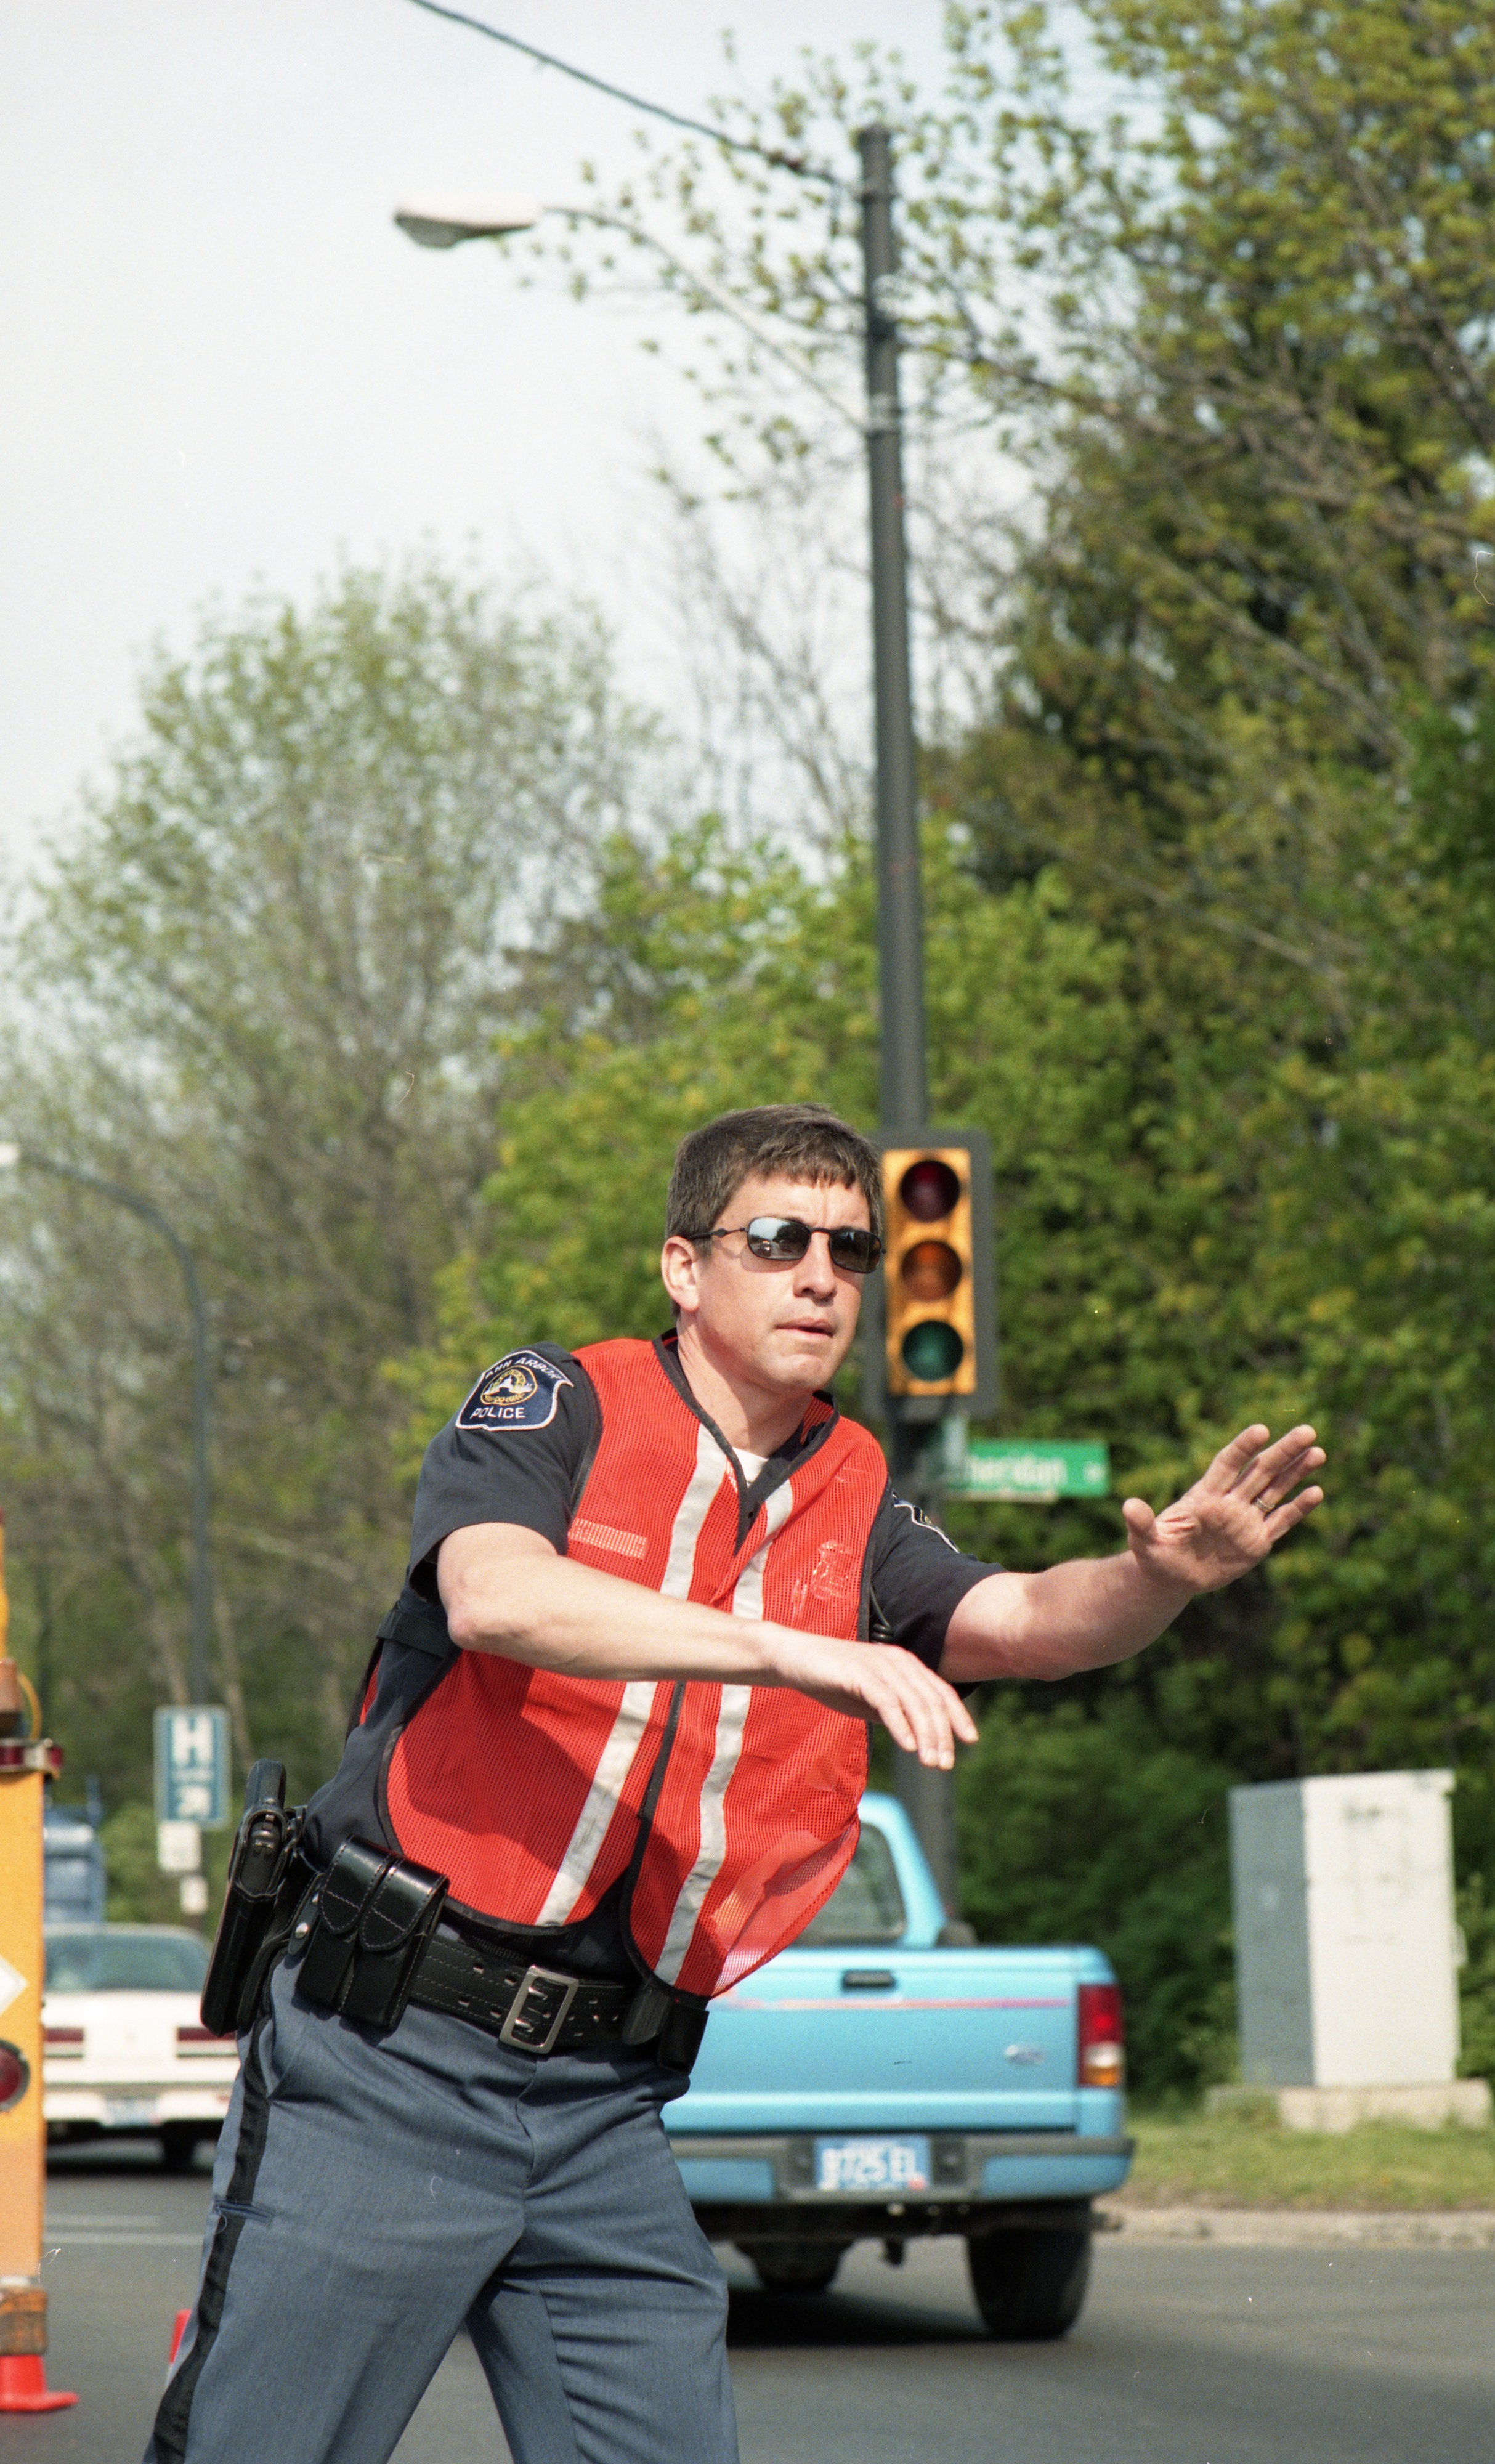 Ann Arbor Police Department Officer Peter Stipe on Traffic Control Duty, May 1999 image